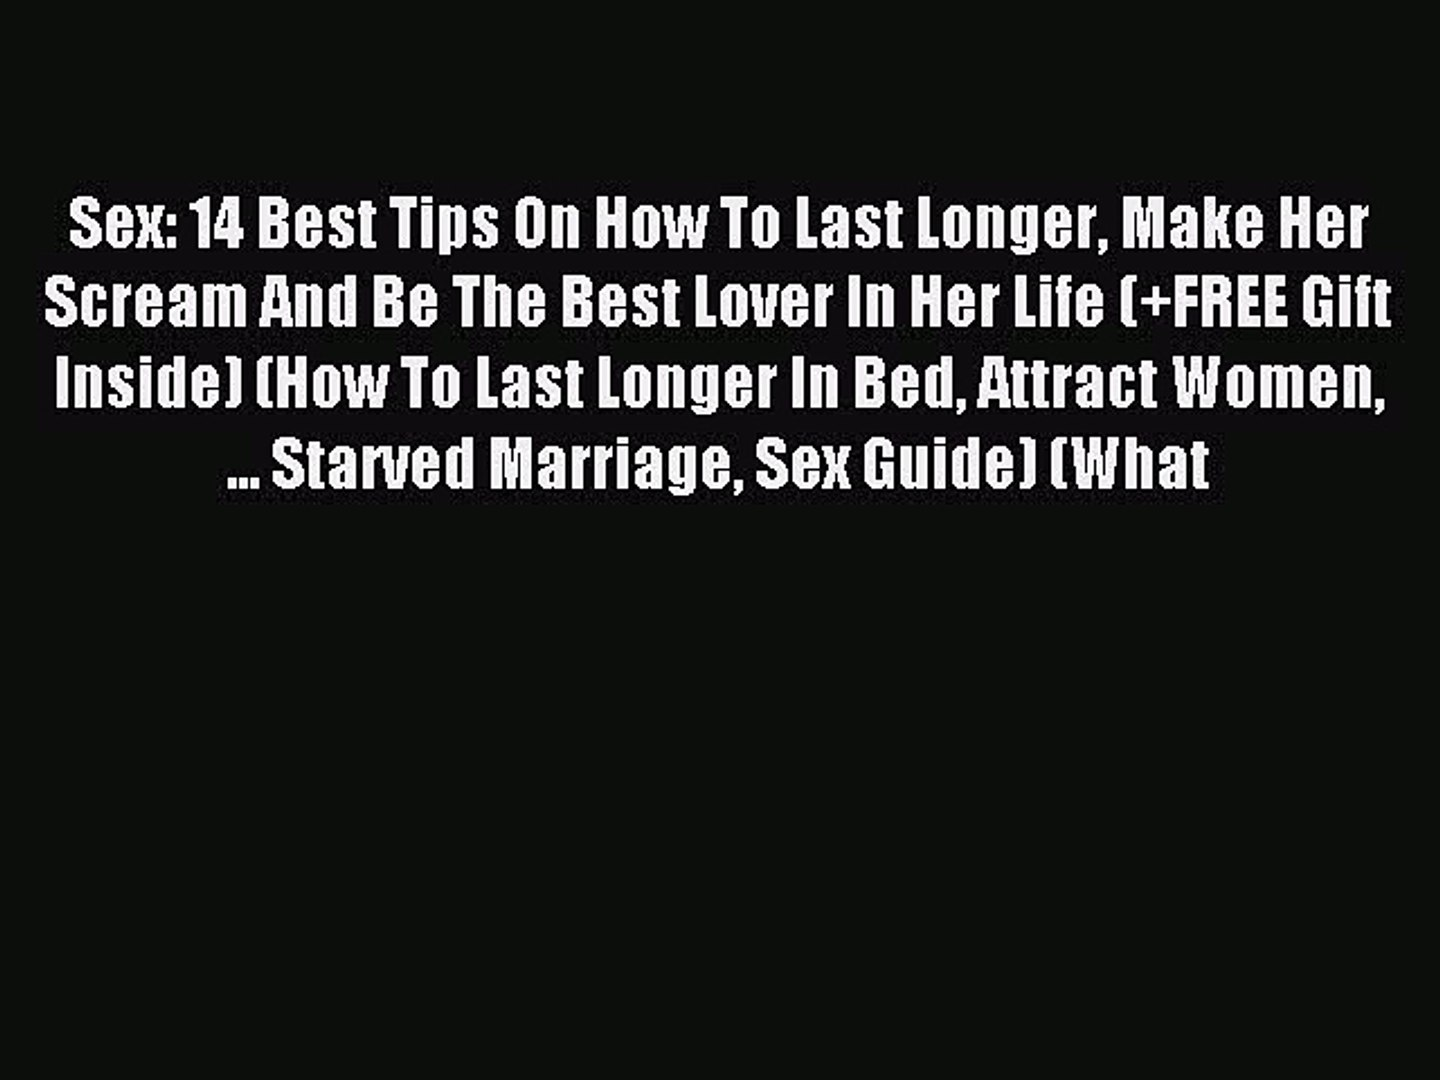 Bed tips on lasting long in How to